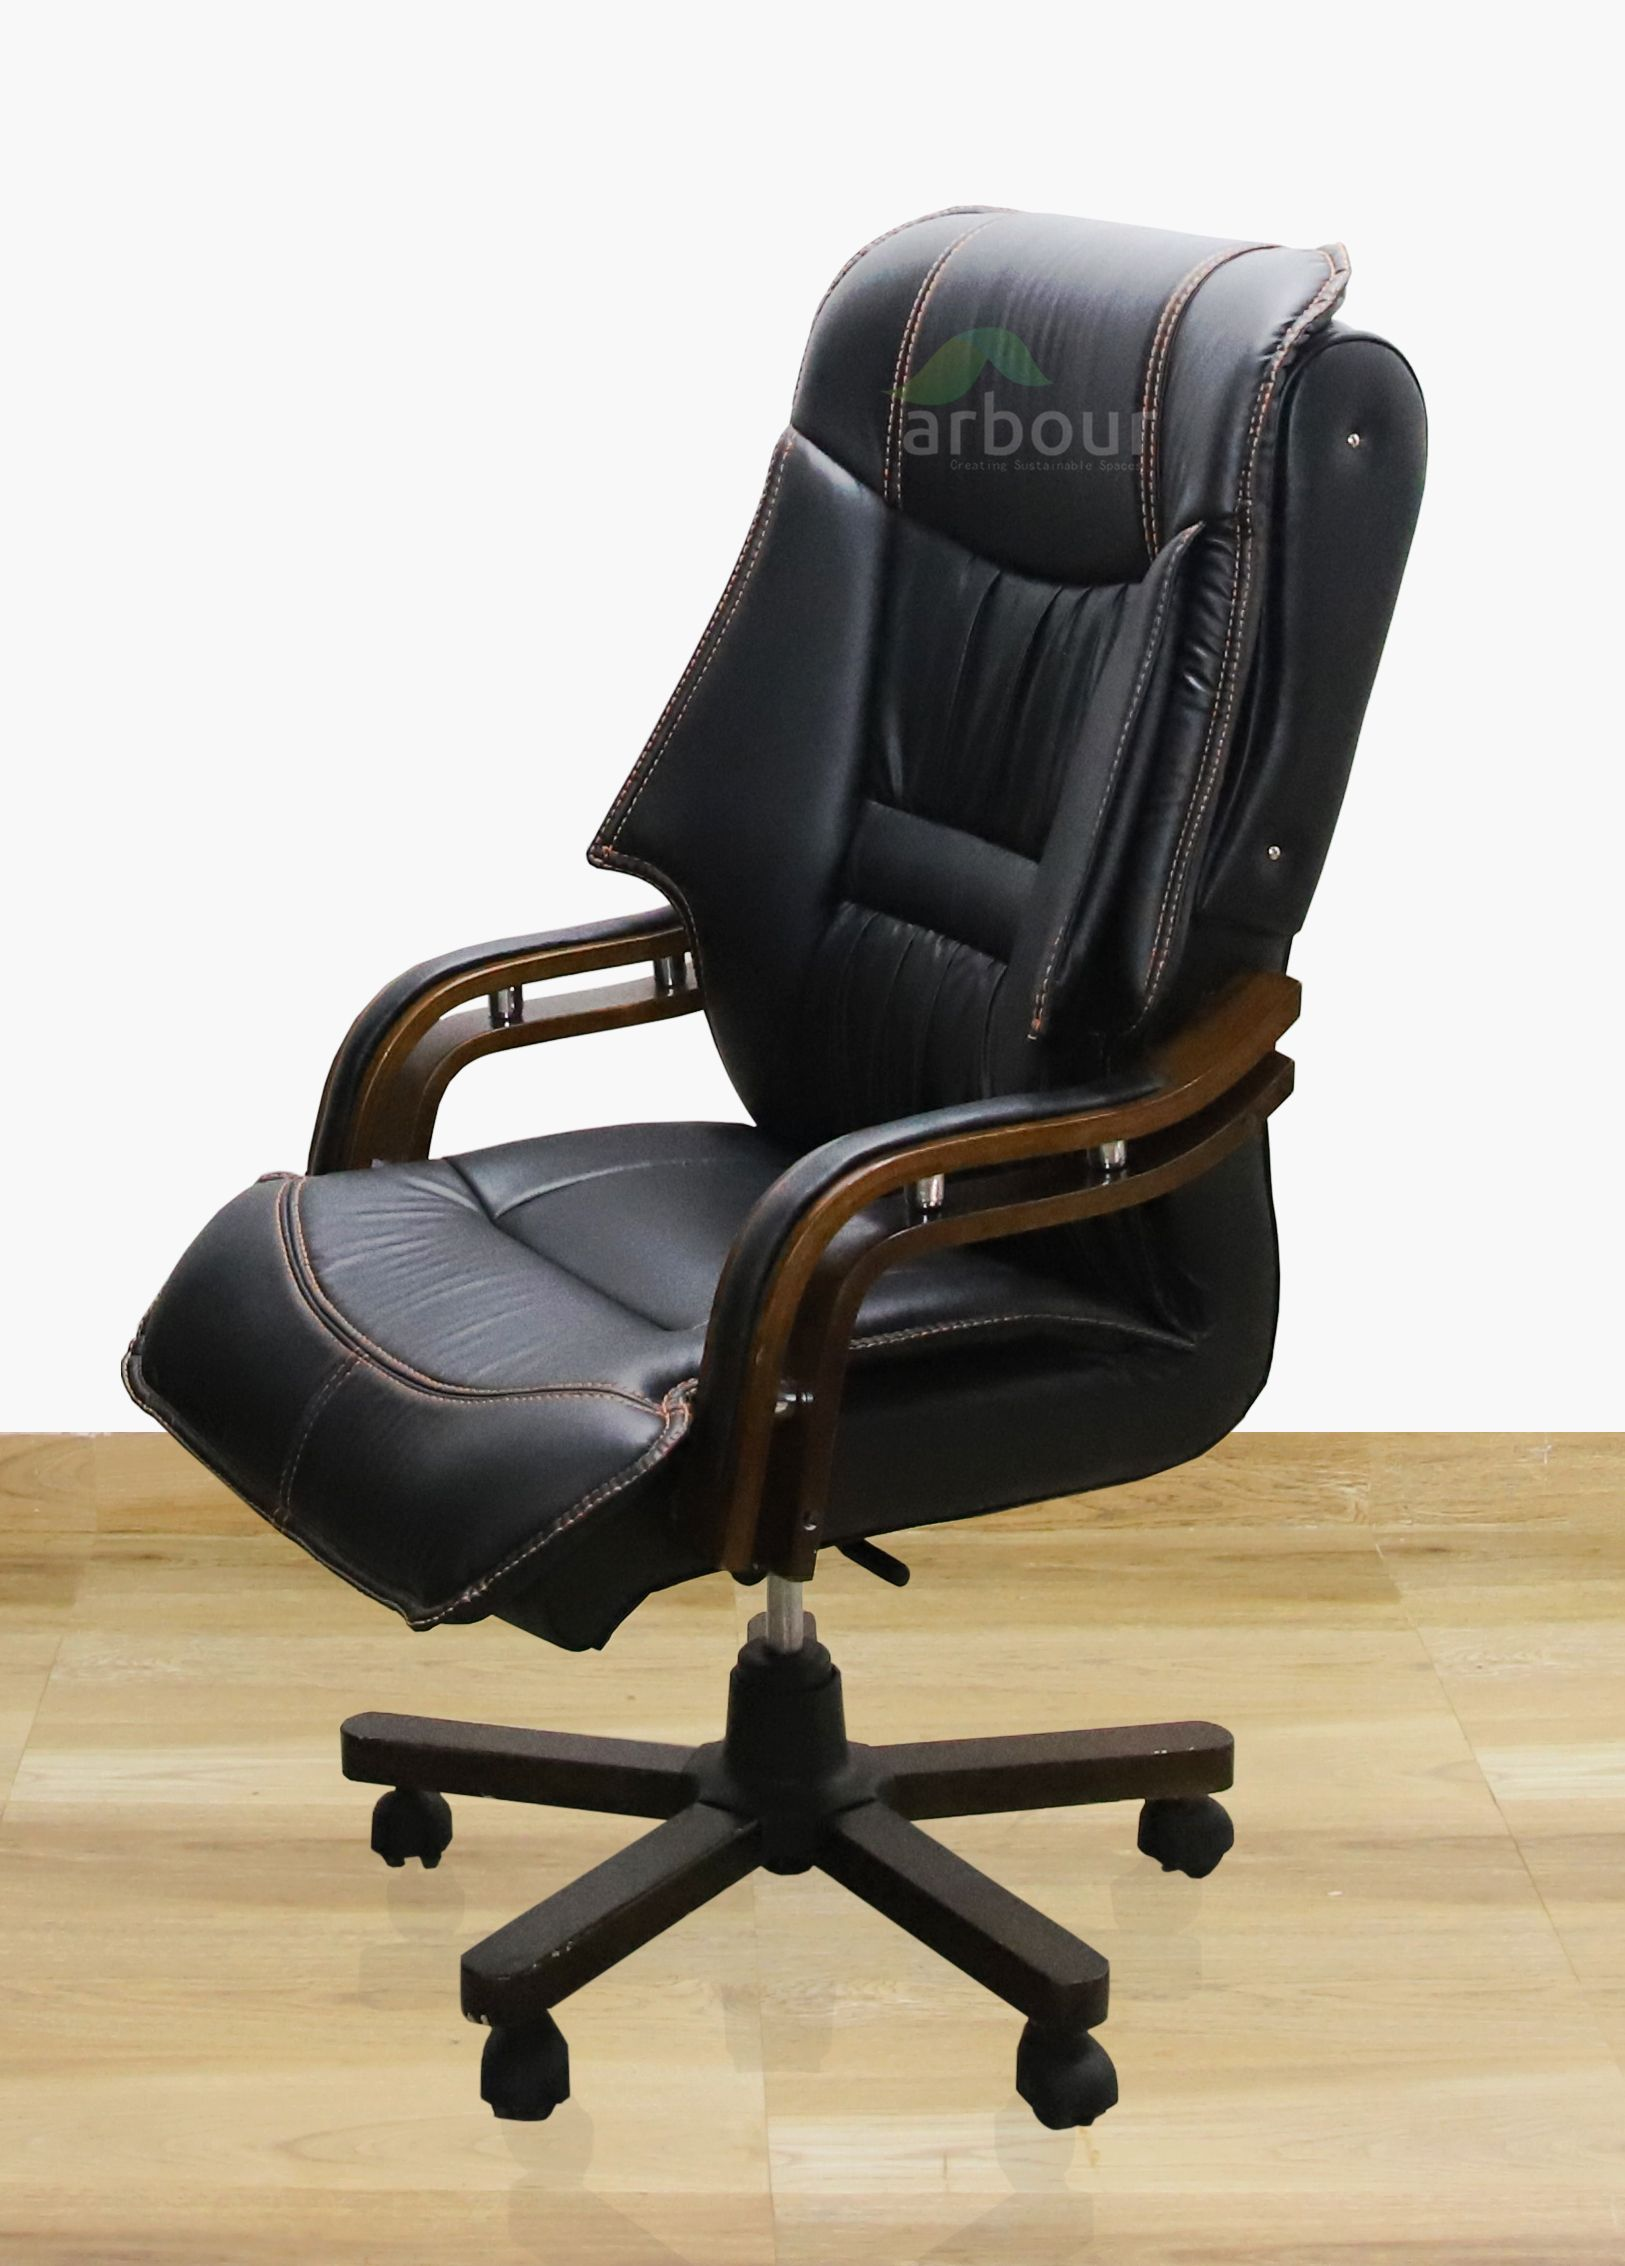 Office Chairs Near Me Arbour Pioneer In Boss Chair Manufacturer In Bangalore Providing